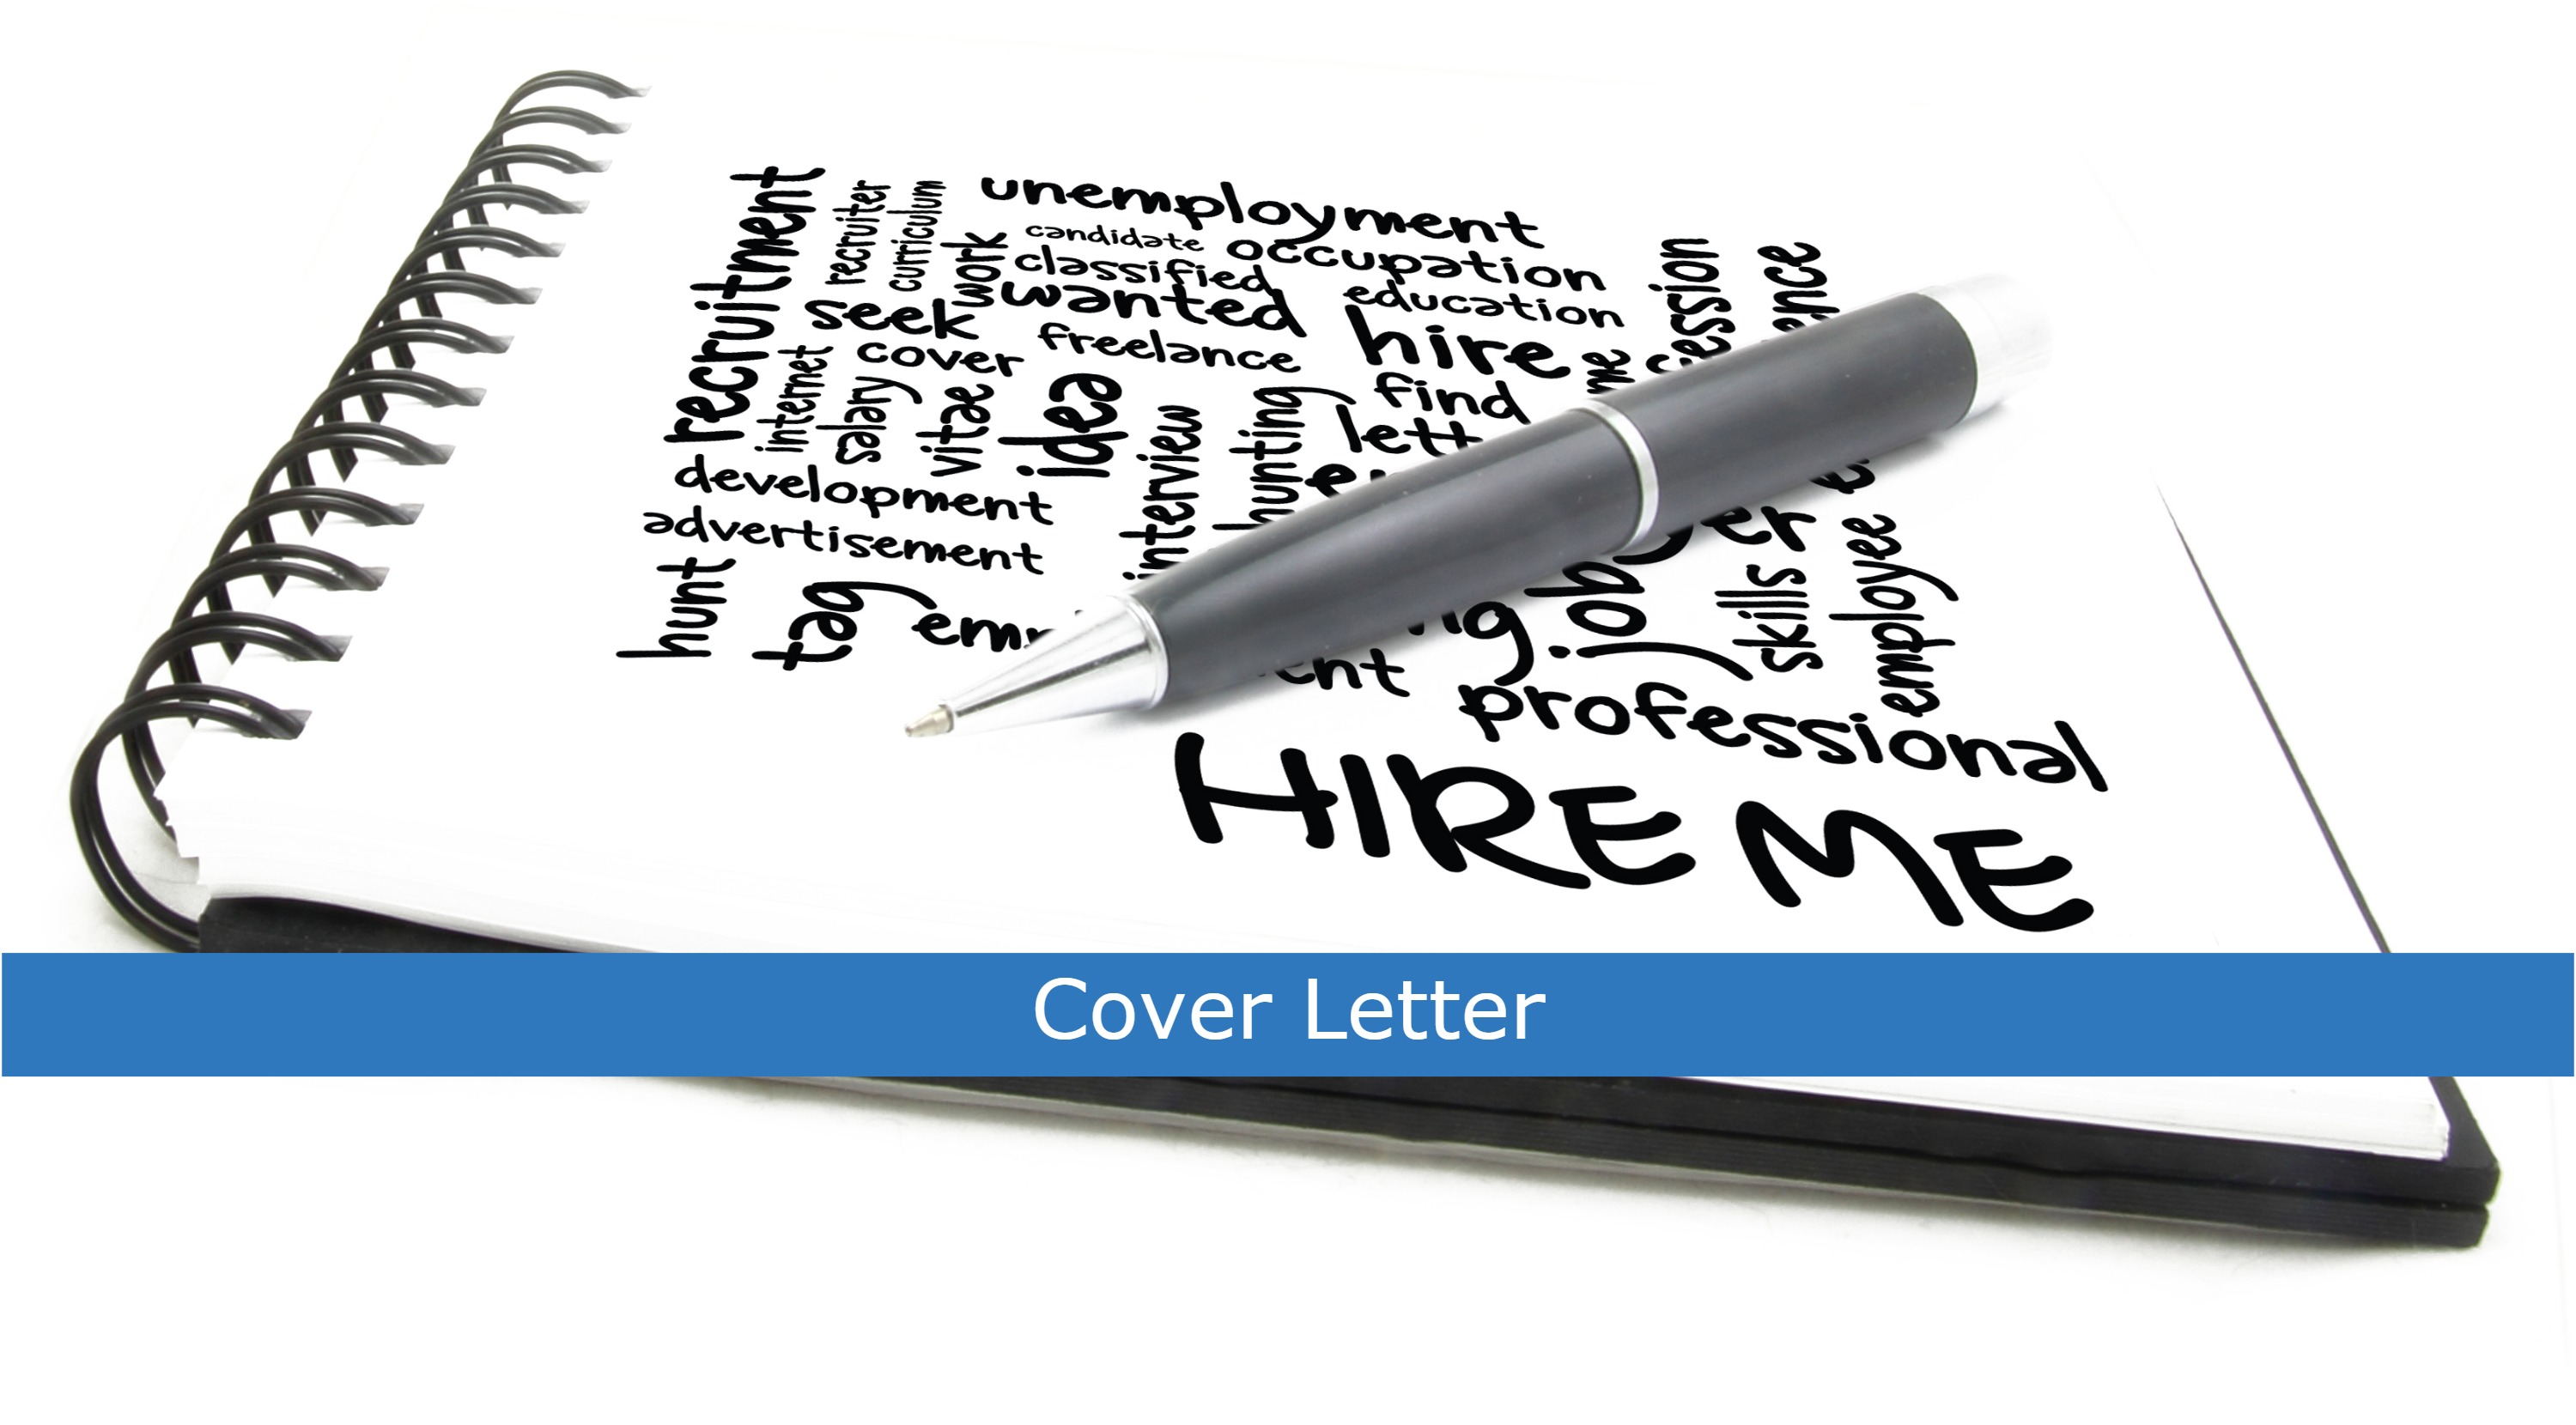 Cover Letter will create a cohesive application process.